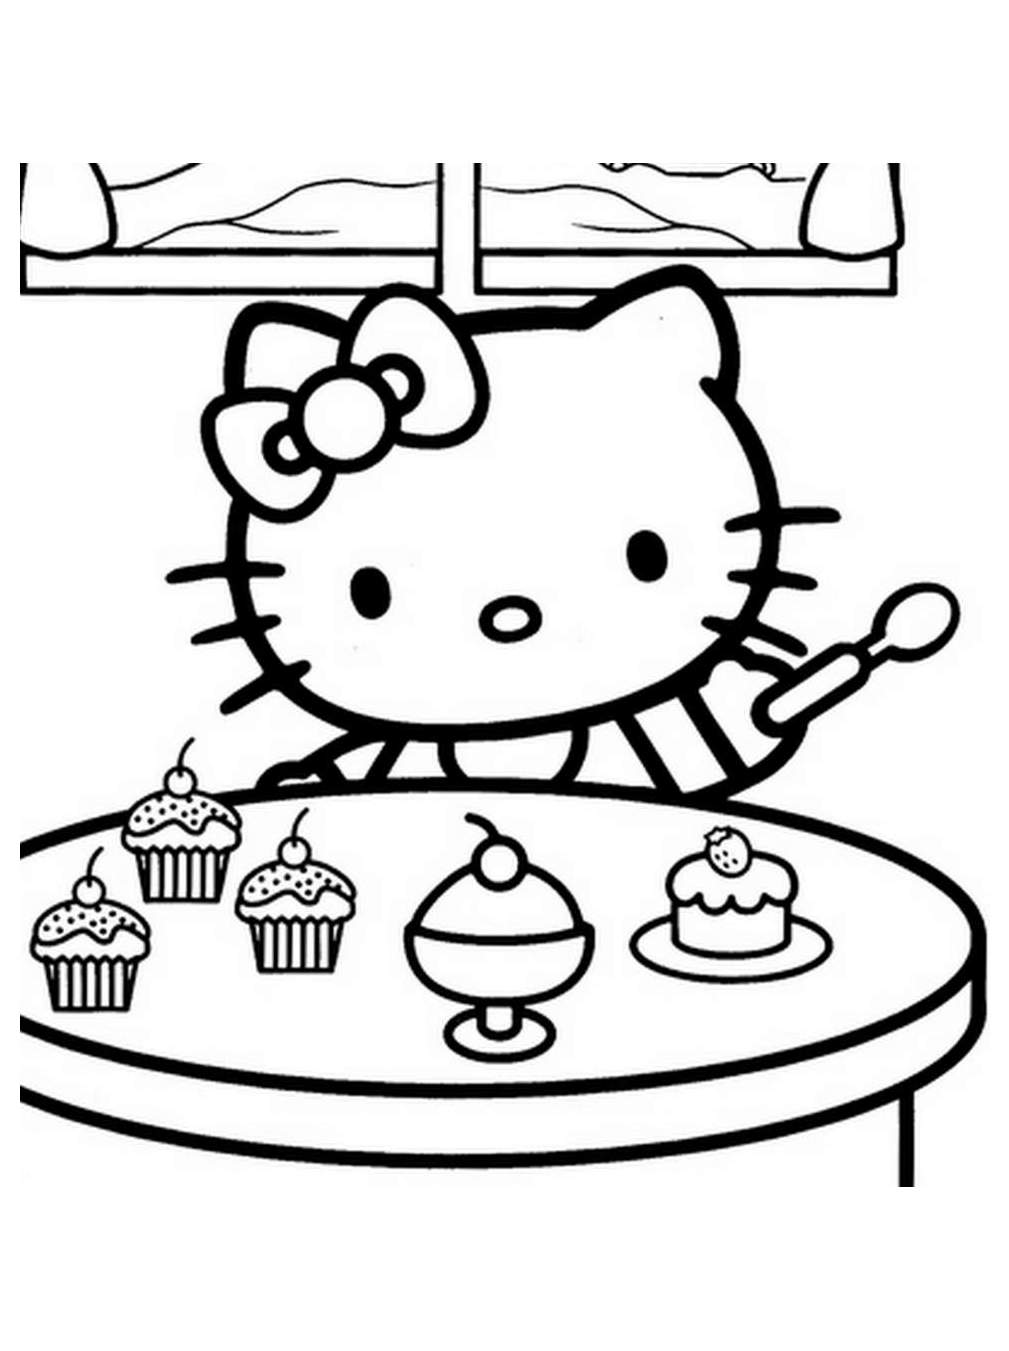 hello kitty color page hello kitty coloring pages birthday printable kitty hello color page